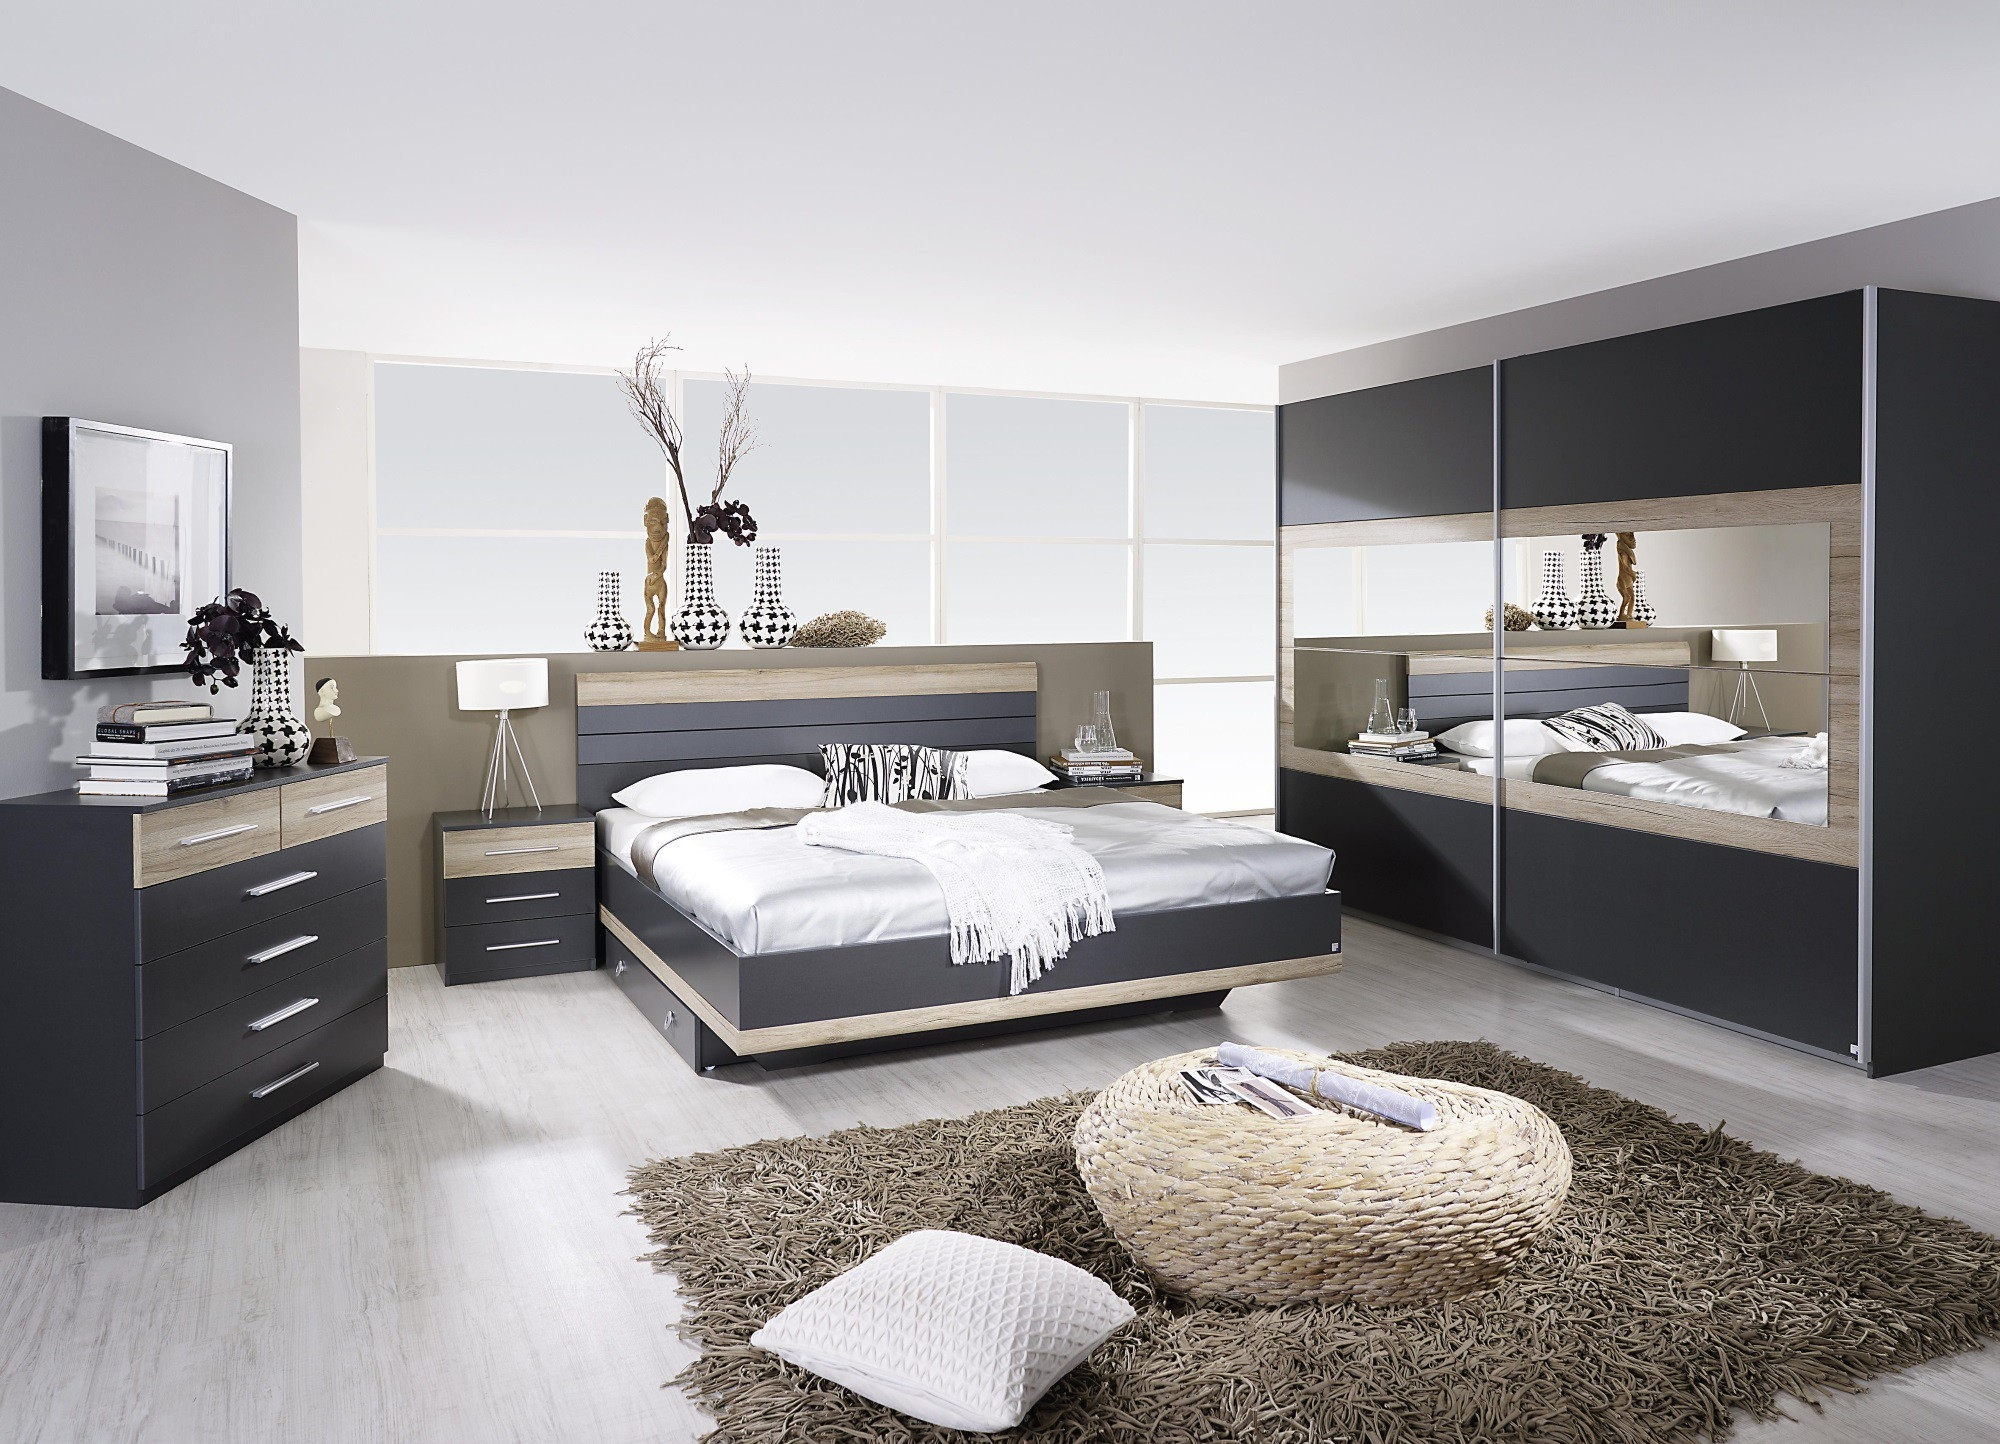 Chambre adulte compl te contemporaine gris ch ne clair for Chambre contemporaine adulte